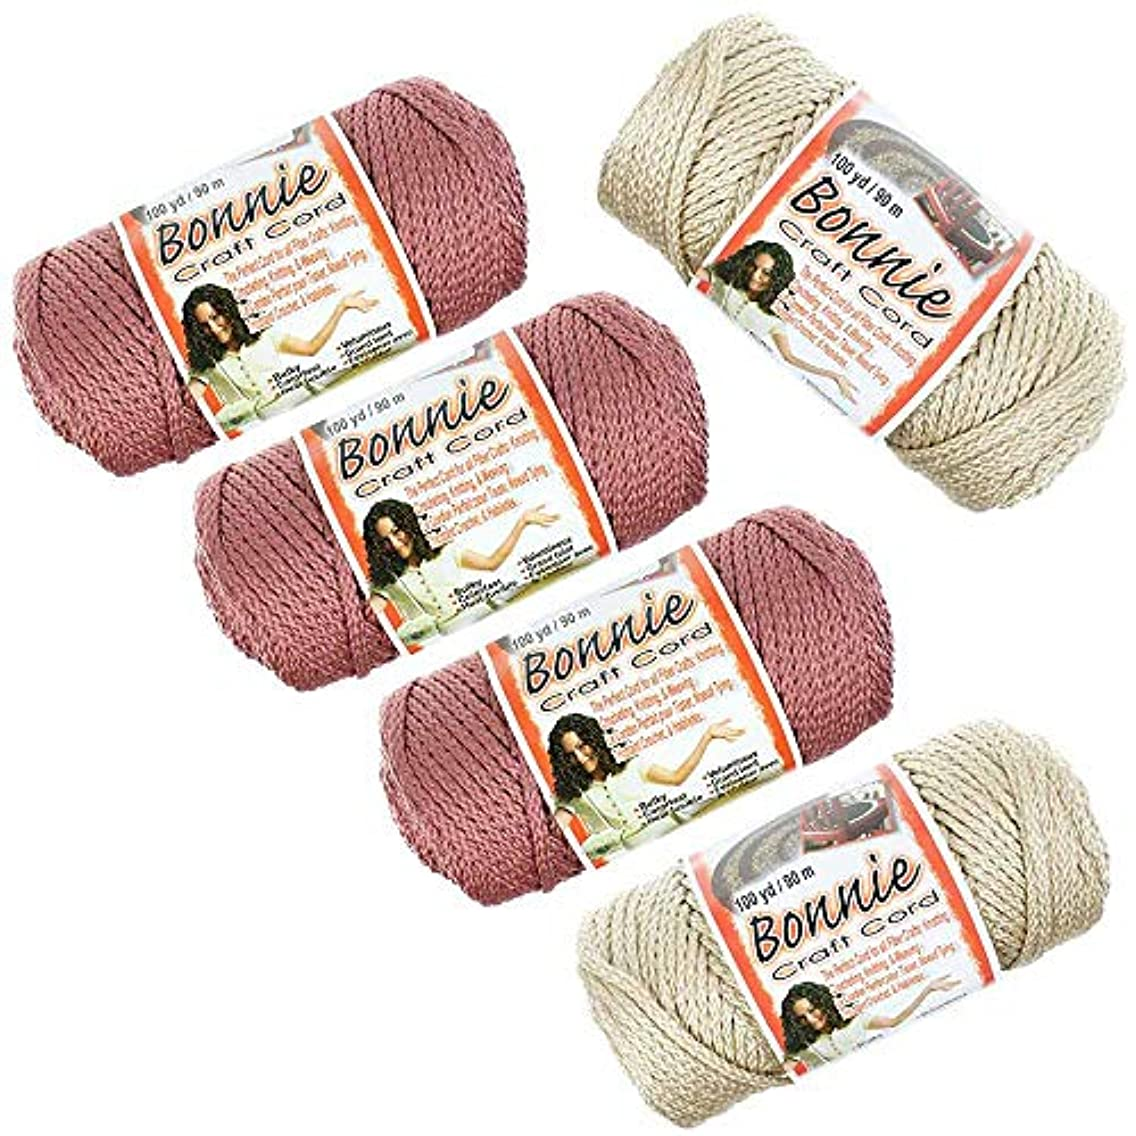 Craft County - Bonnie Macramé Cord - 5 Pack - 4mm - 100 Yard Length - Variety of Colors